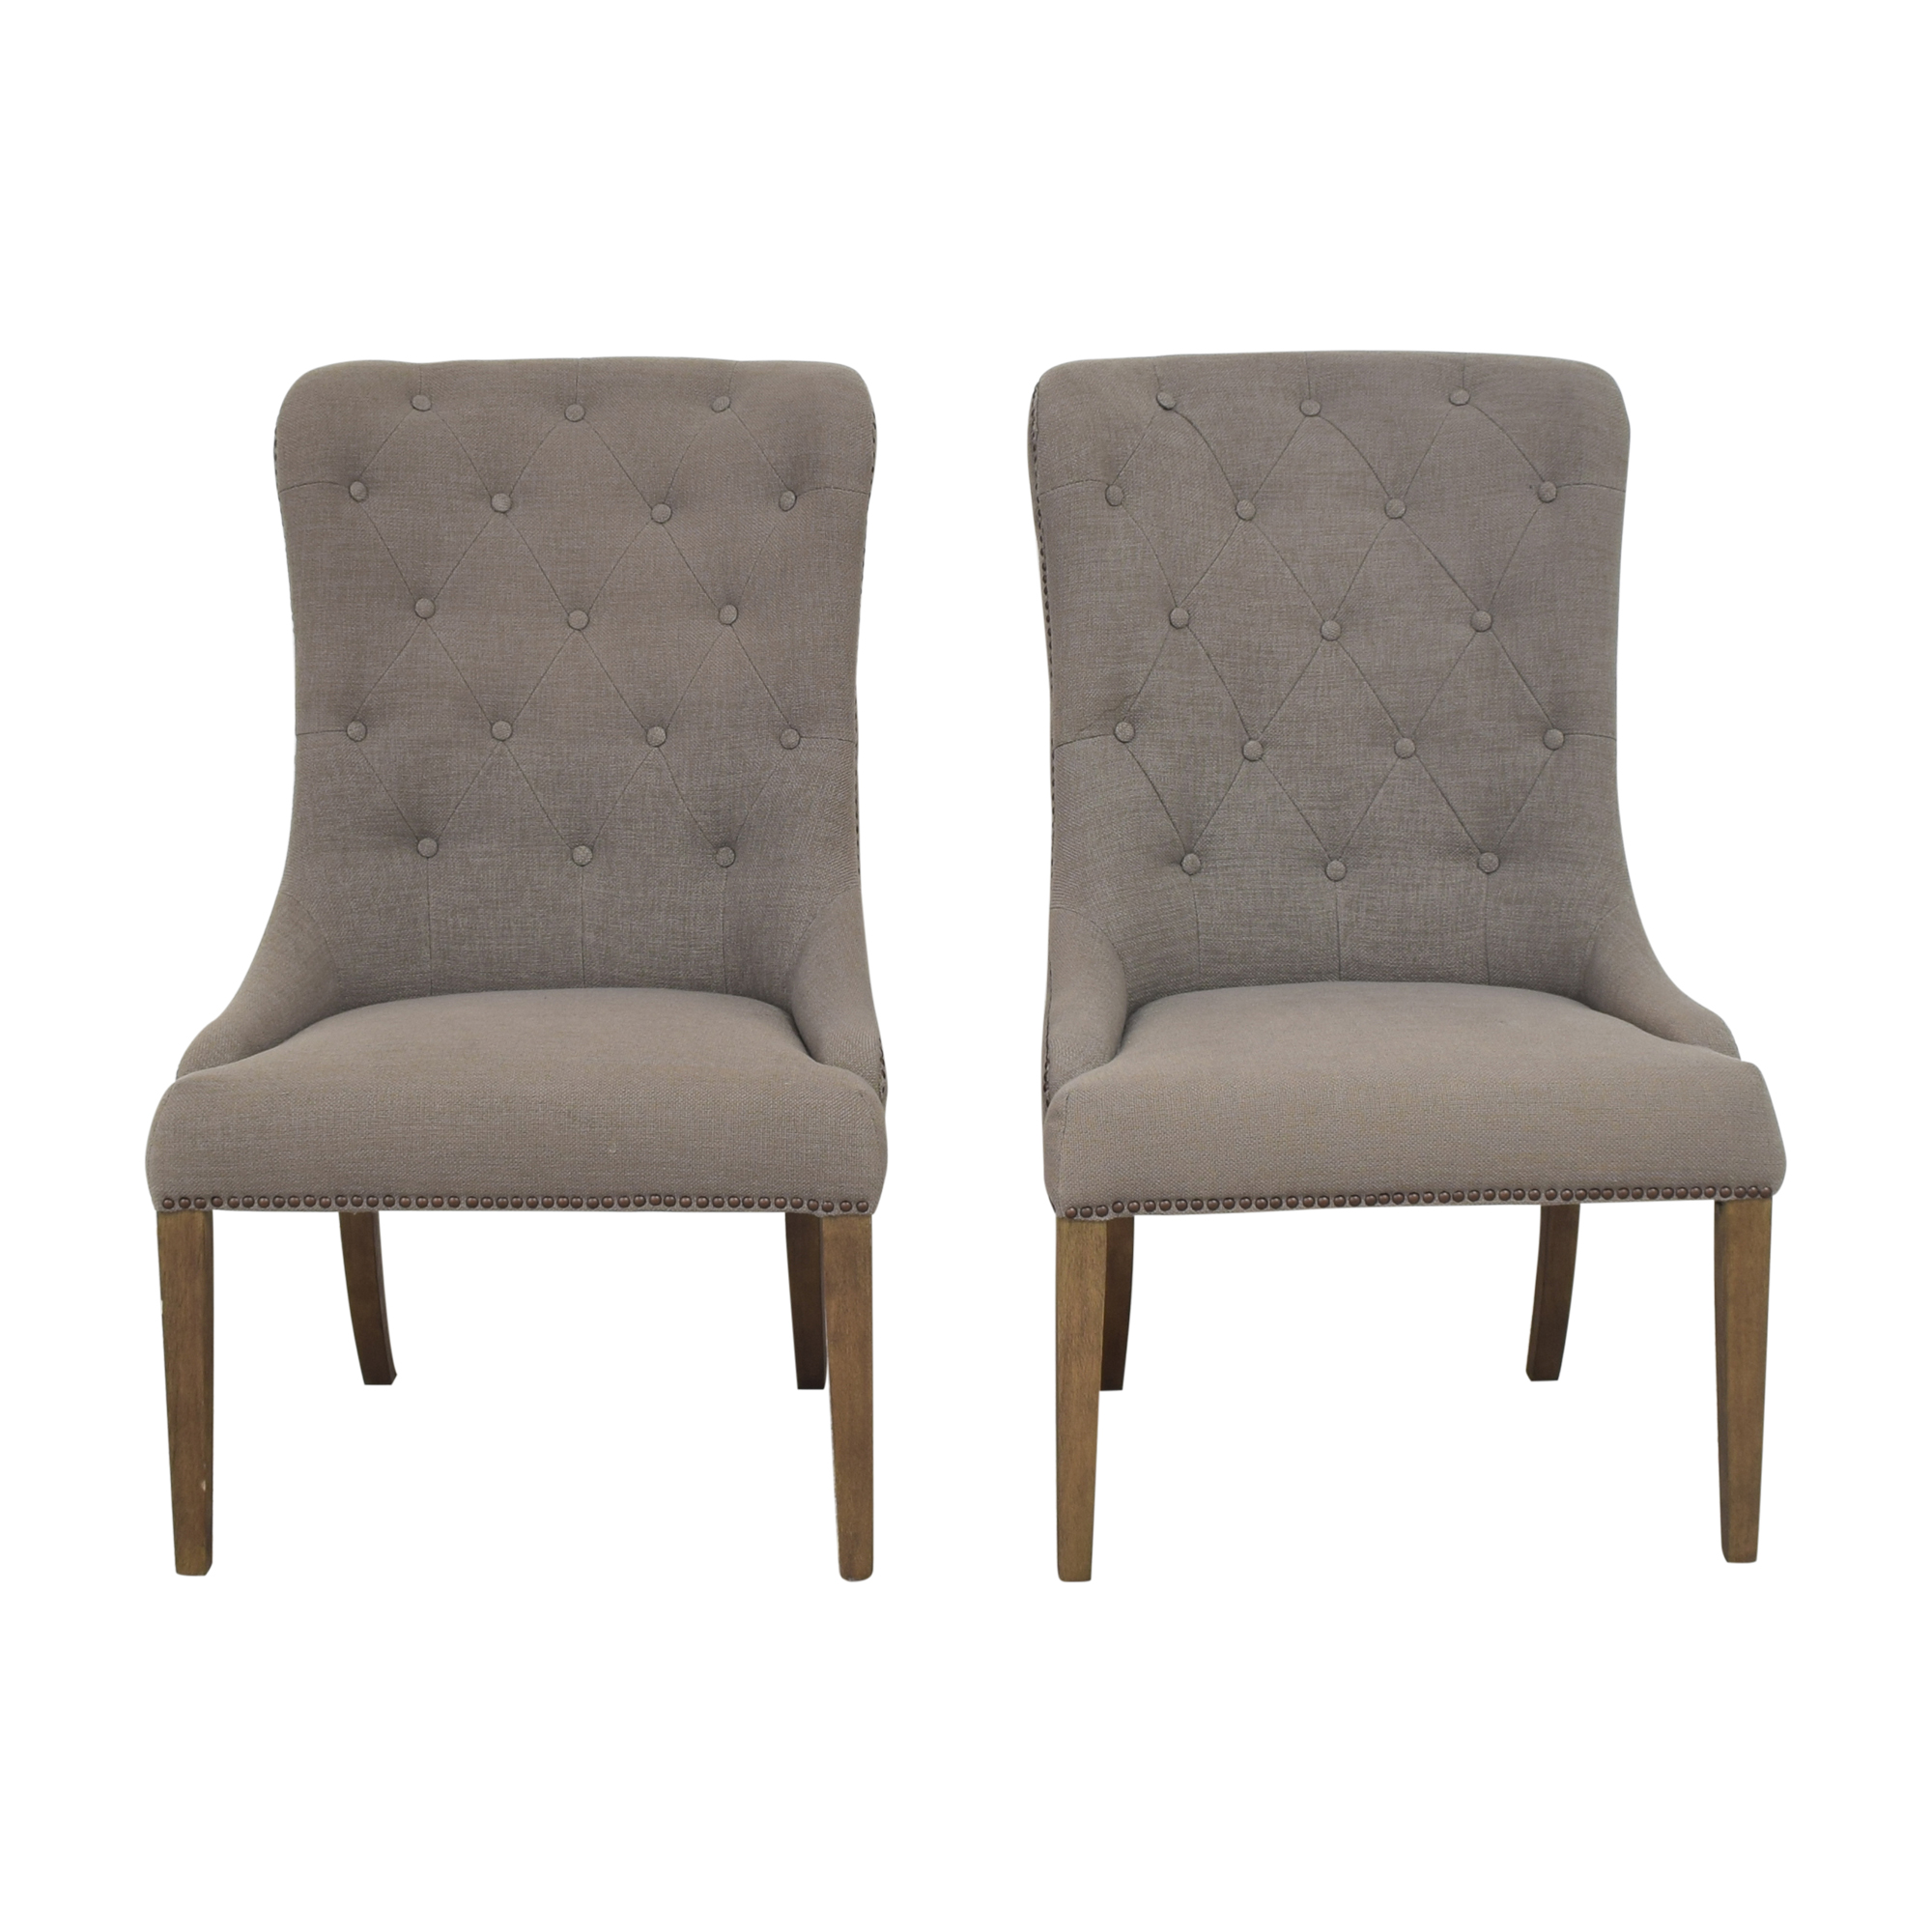 Four Hands Four Hands Elouise Dining Chairs coupon